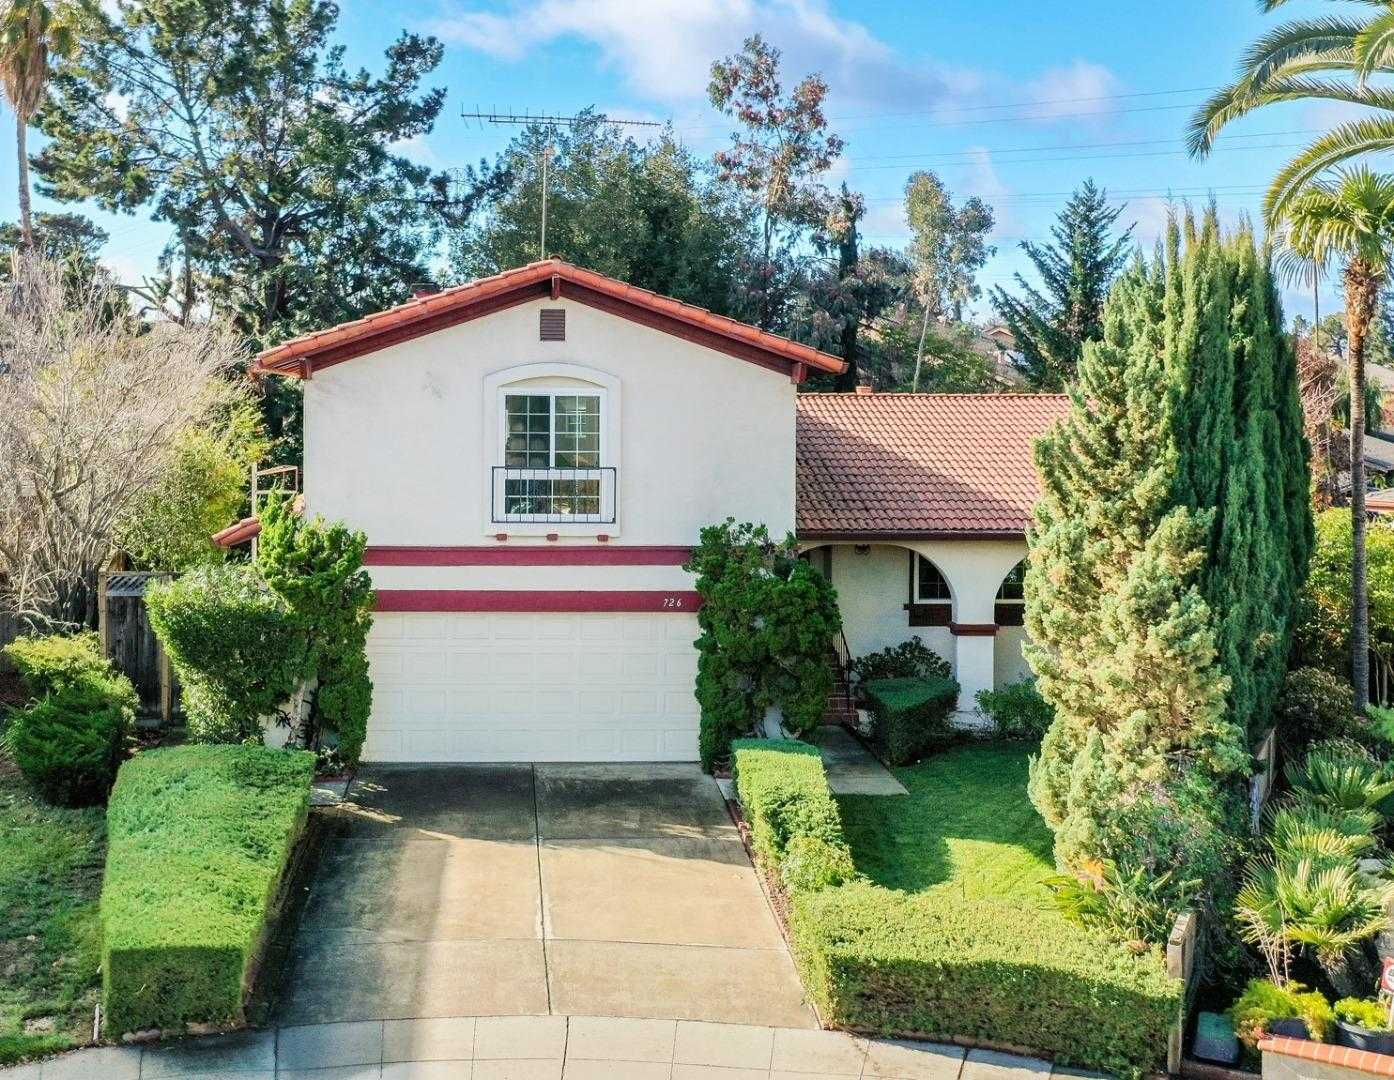 $1,880,000 - 4Br/3Ba -  for Sale in Sunnyvale